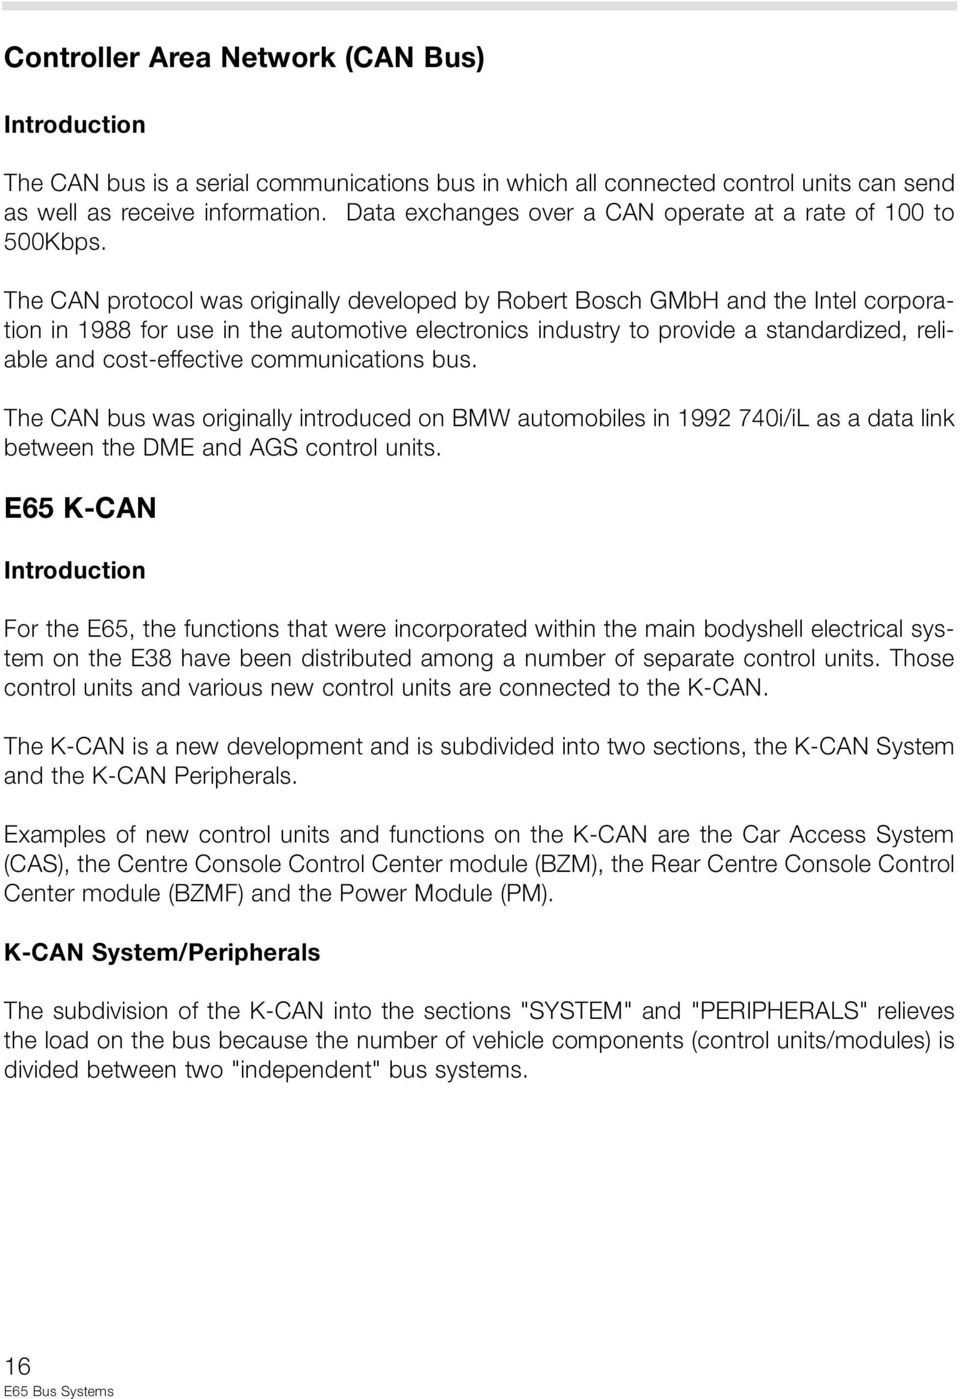 Introduction Bus Systems E65 Bus System Overview E65 Sub-Bus Systems